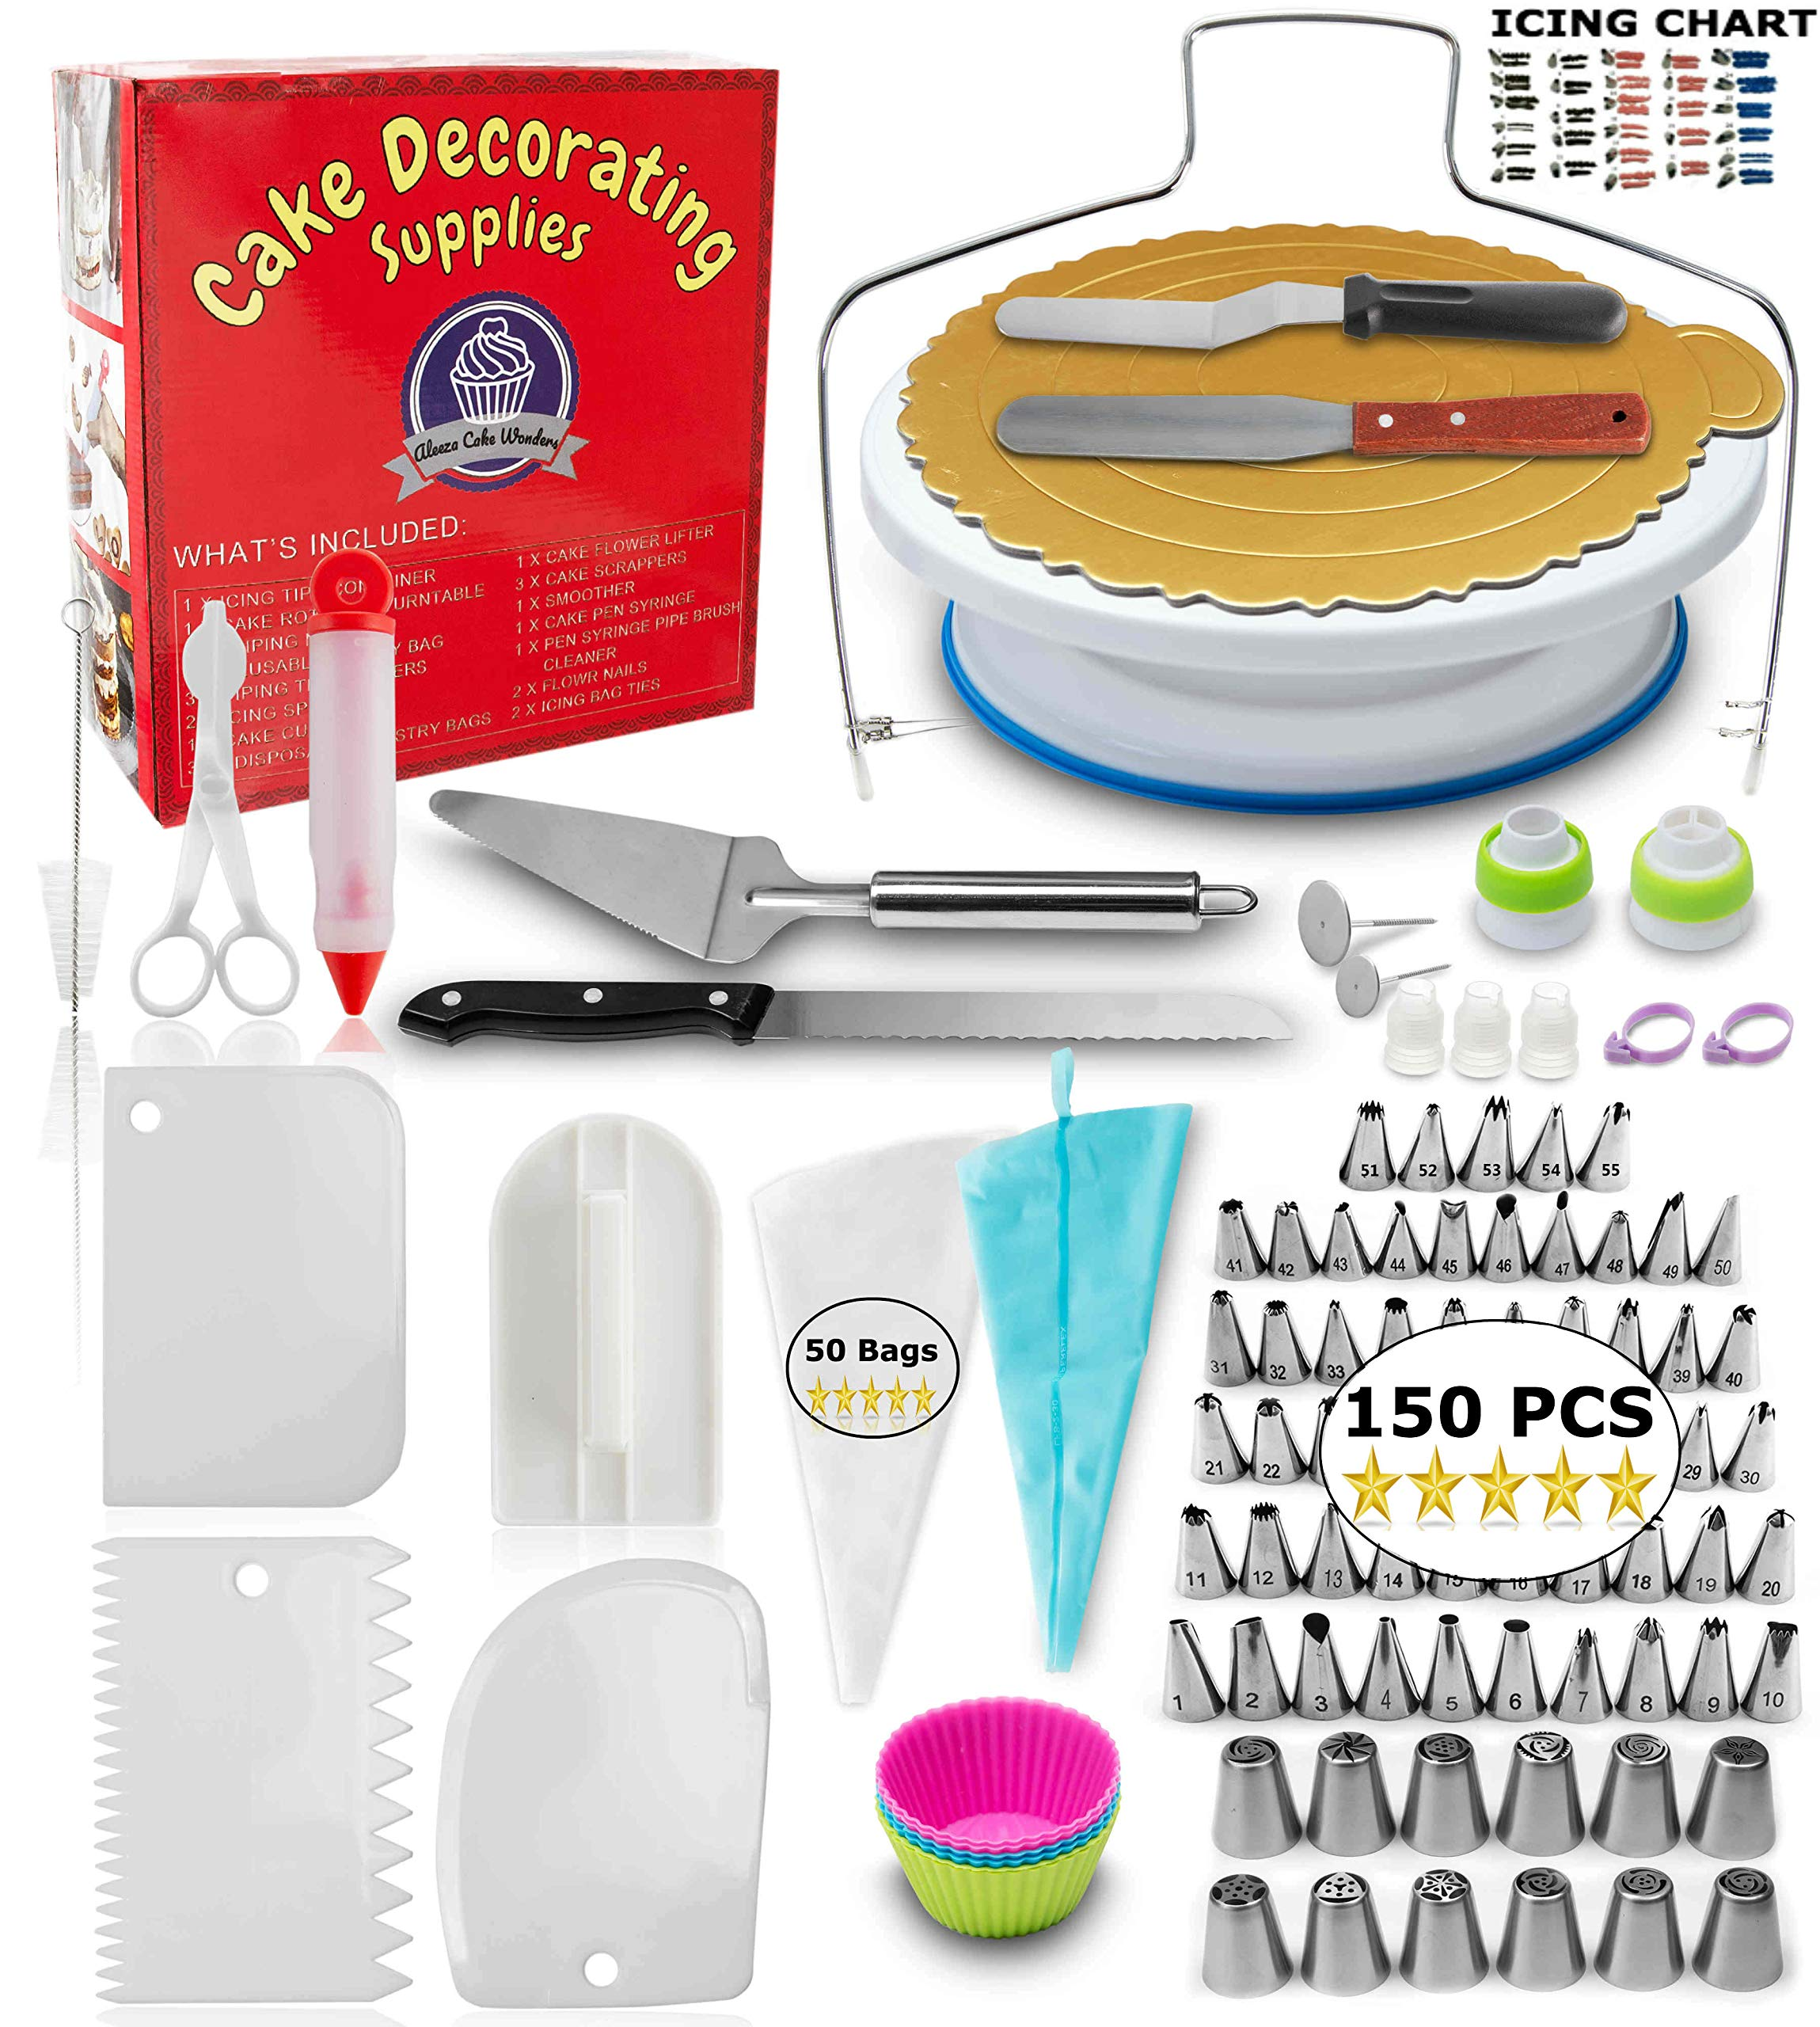 Cake Decorating Supplies - (150 PCS CAKE DECORATING KIT) With Numbered Icing Tips, Tips Chart, Cake Rotating Turntable and More. Create AMAZING Cakes w/this cake set!